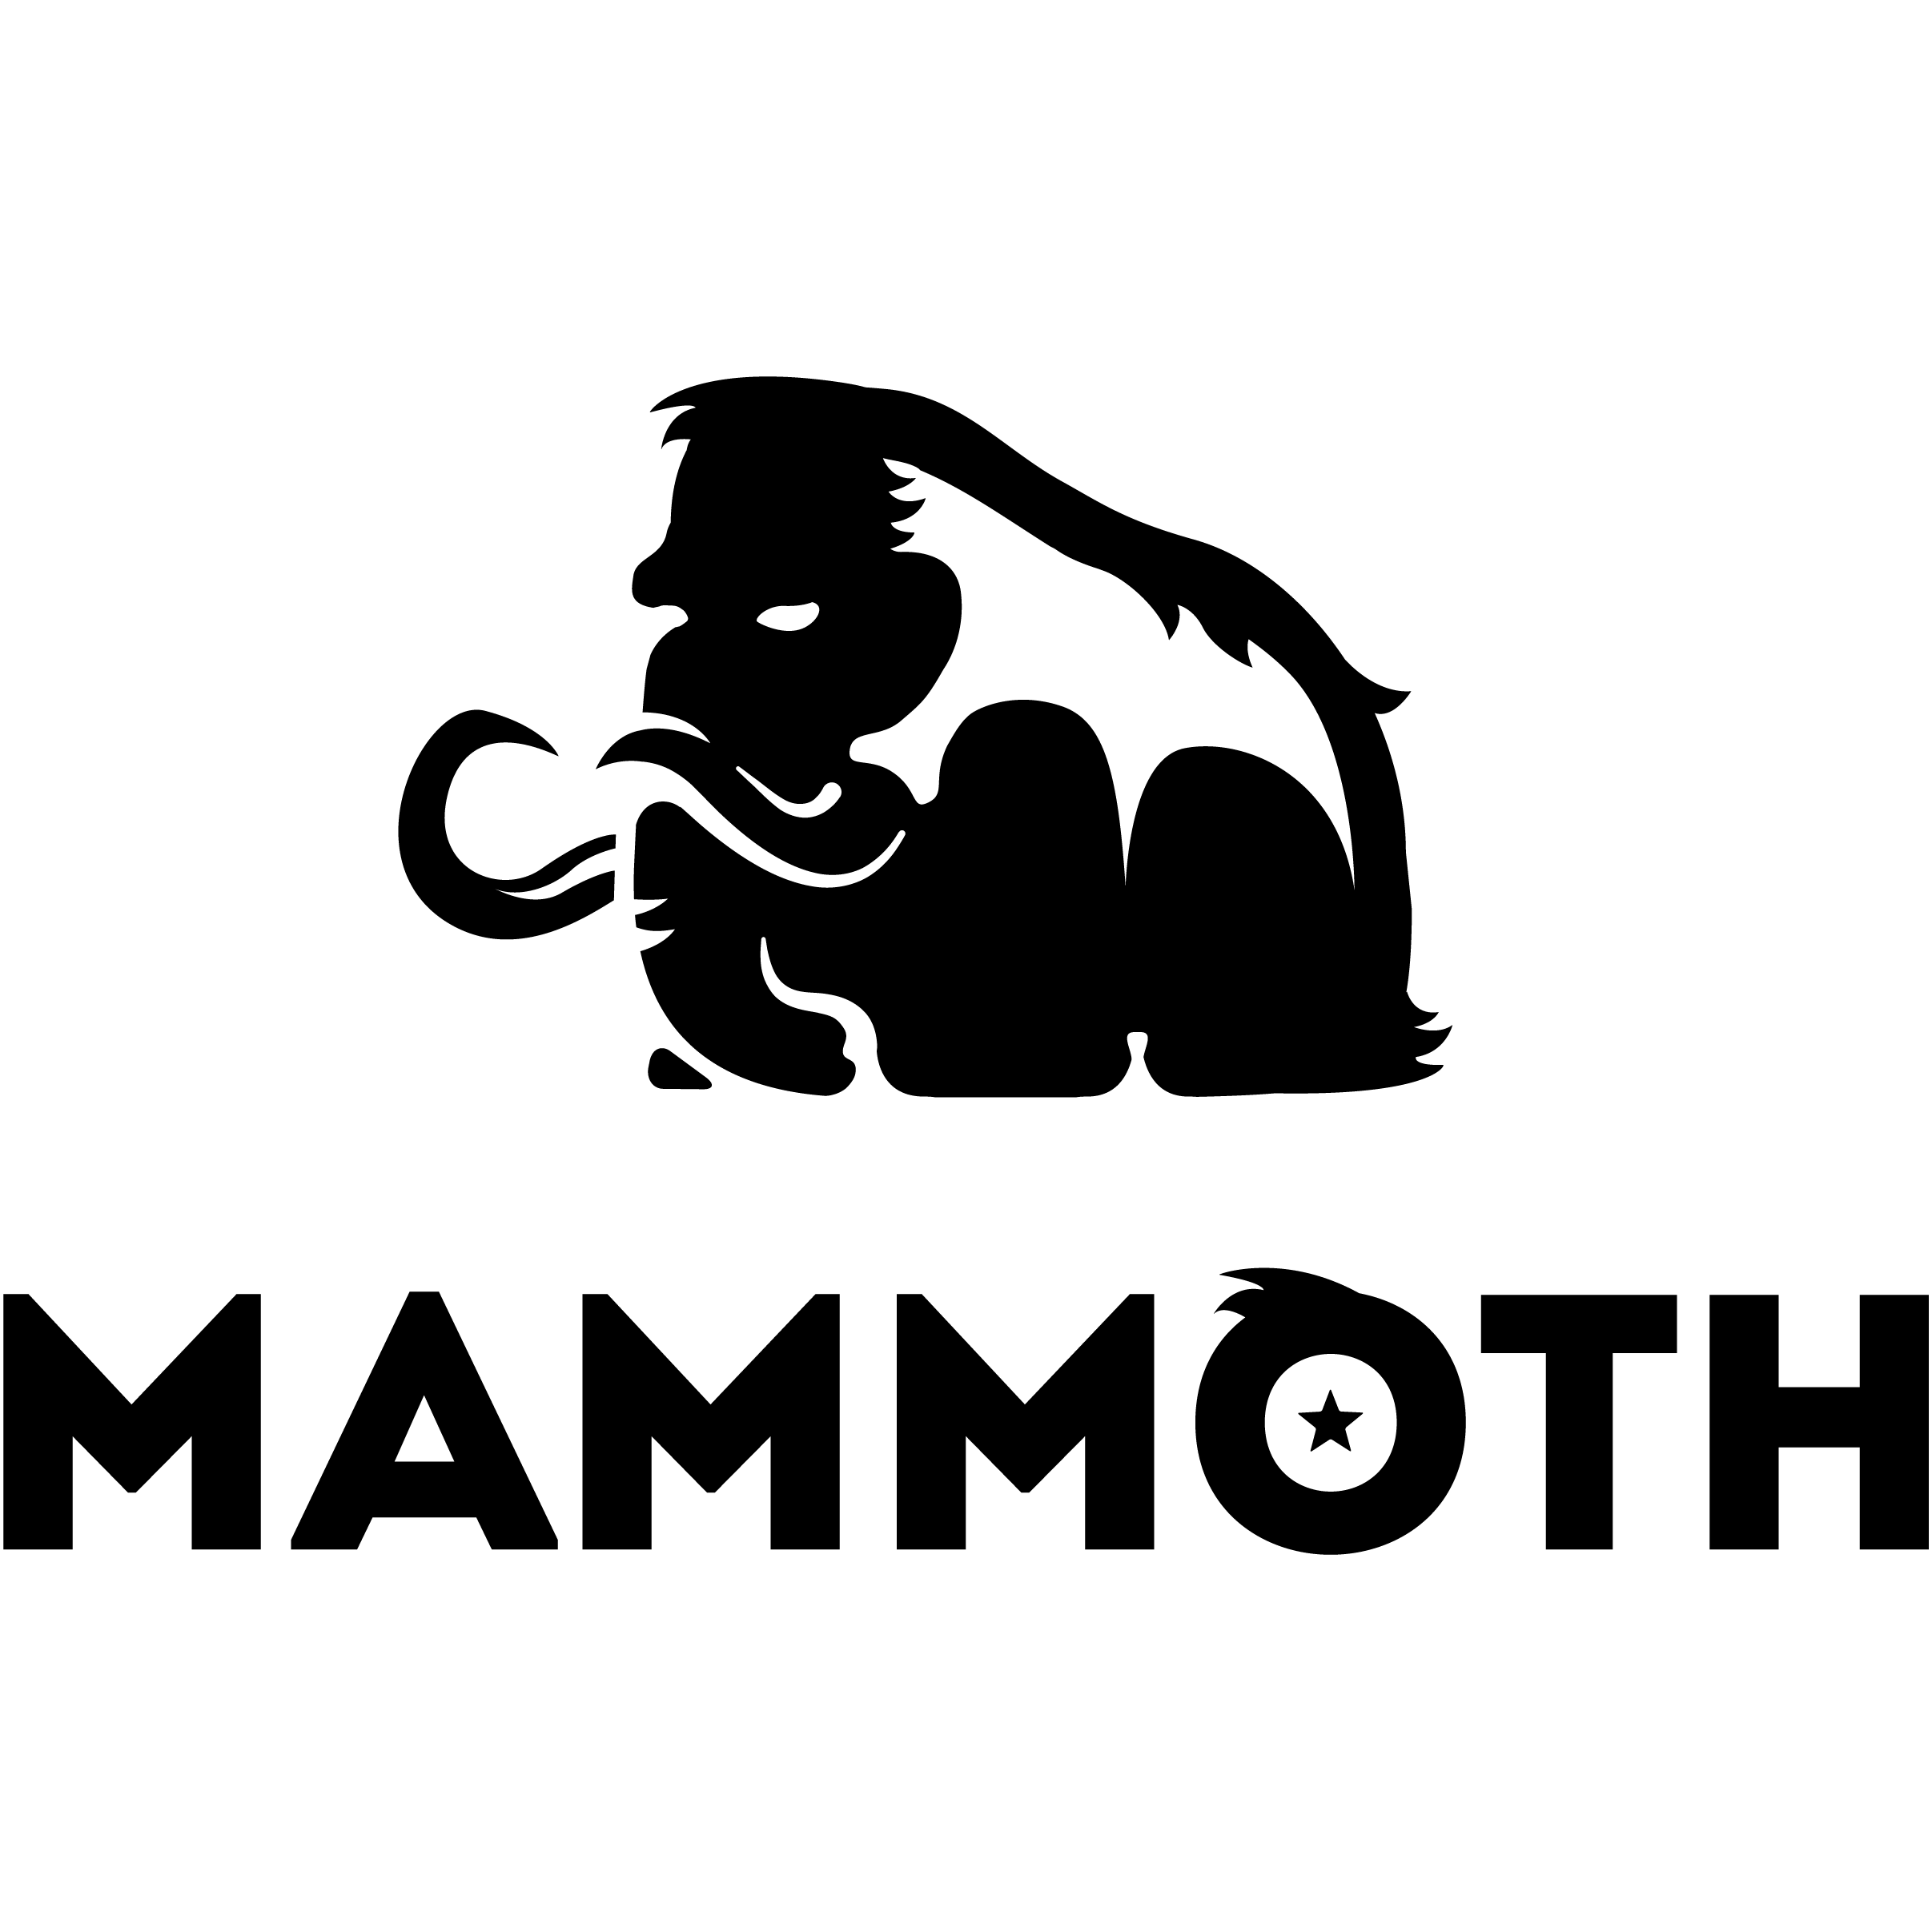 Mammoth | Marketing Agency - Colorado Springs, CO - Business & Secretarial